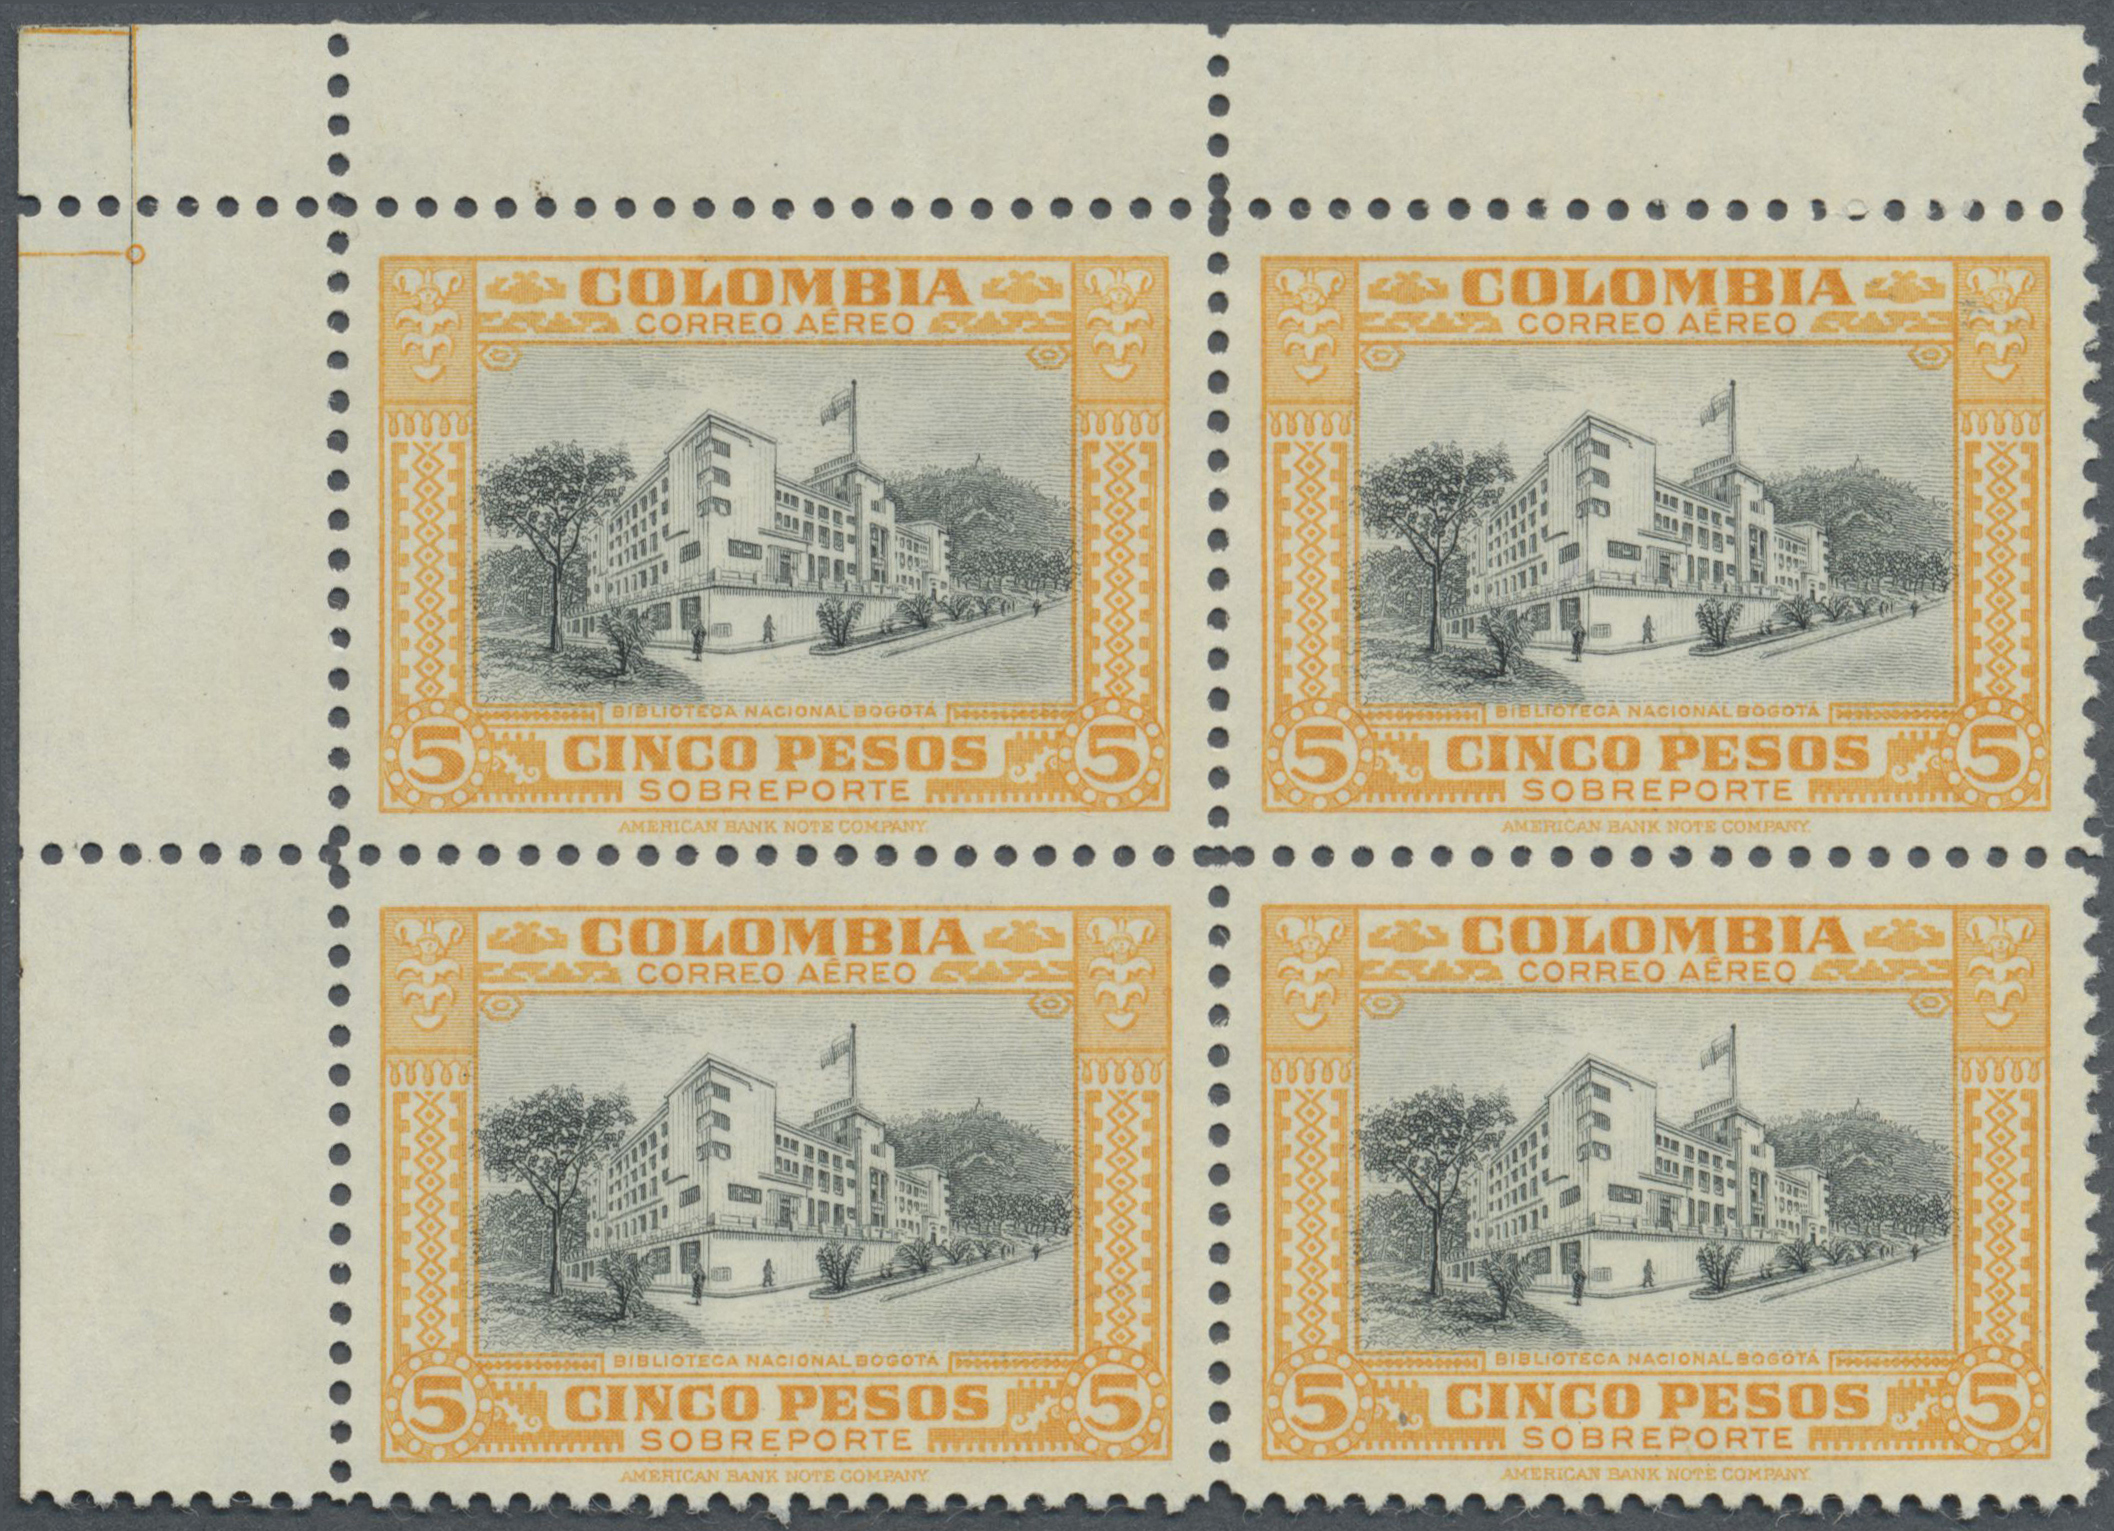 Lot 13942 - kolumbien  -  Auktionshaus Christoph Gärtner GmbH & Co. KG Single lots Philately Overseas & Europe. Auction #39 Day 4